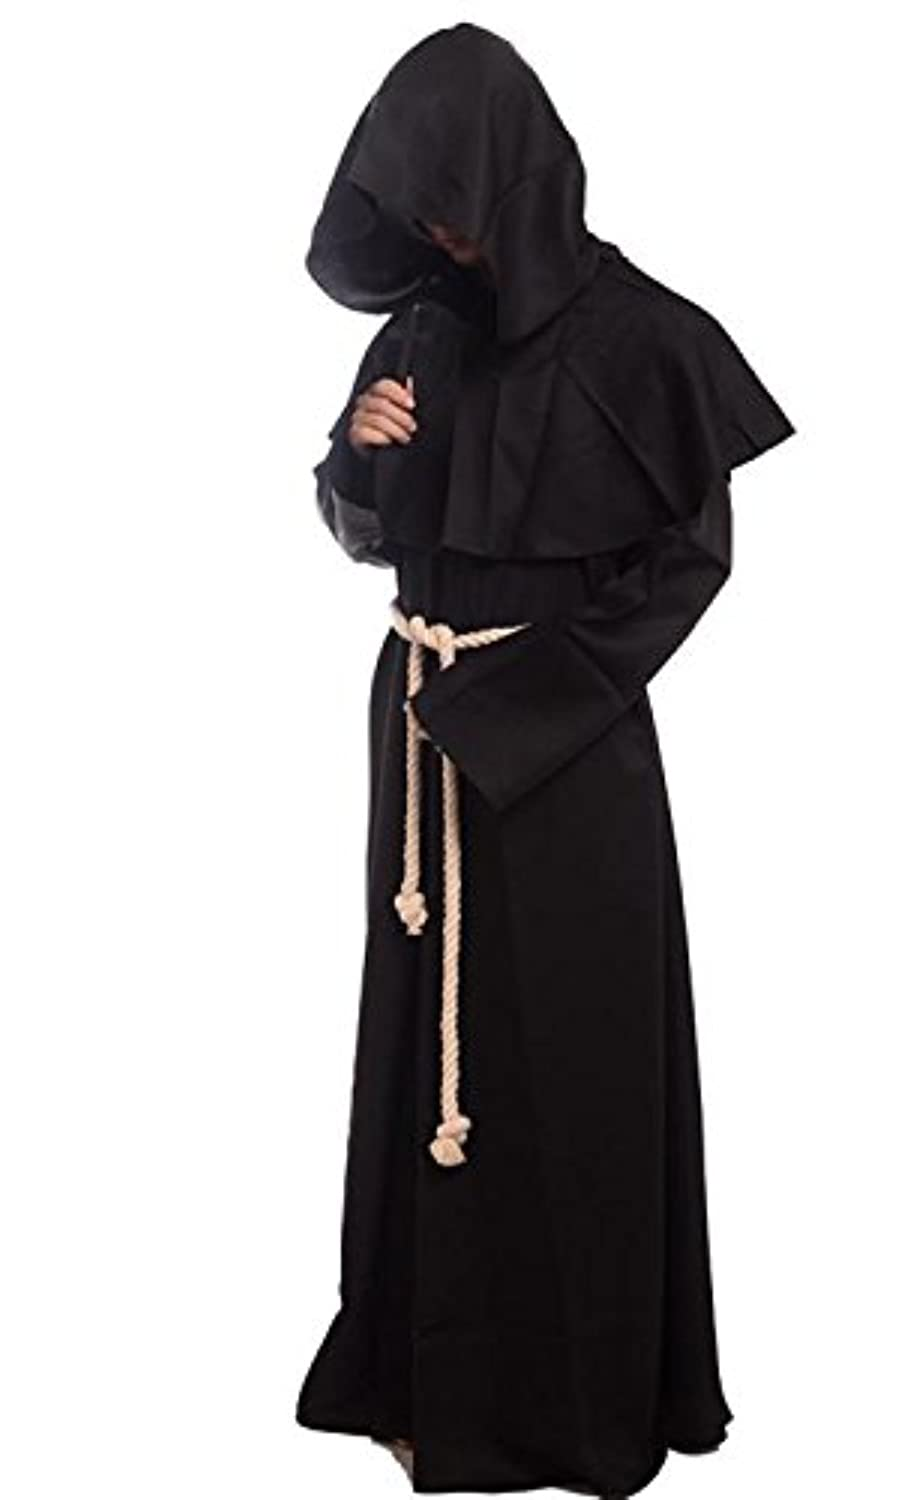 Amazon.com: Friar Medieval Hooded Monk Renaissance Priest Robe ...